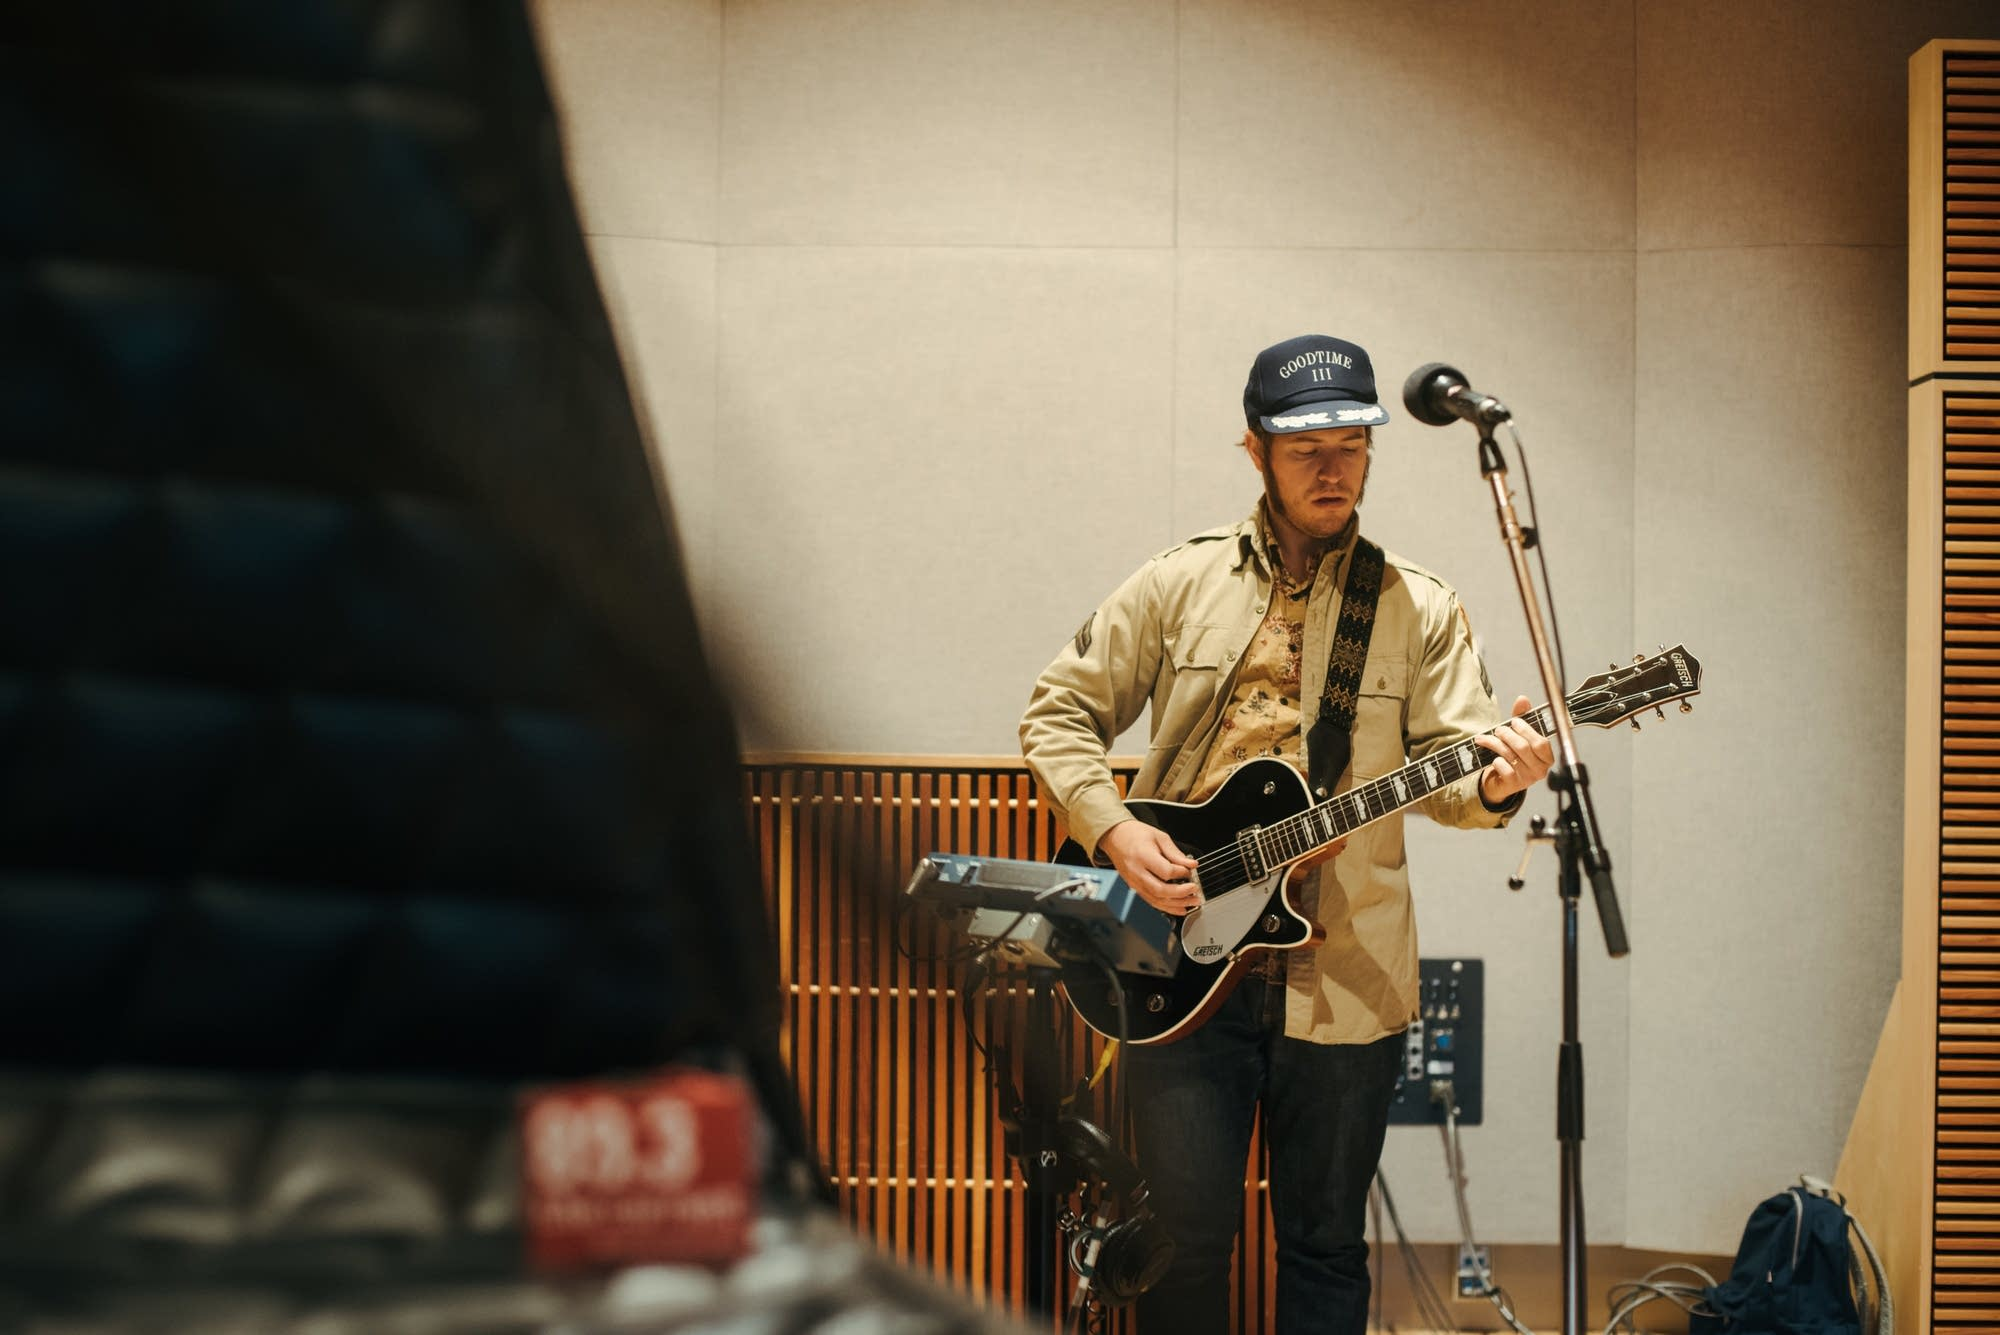 James Everhart of Low Cut Connie performs in The Current studio.